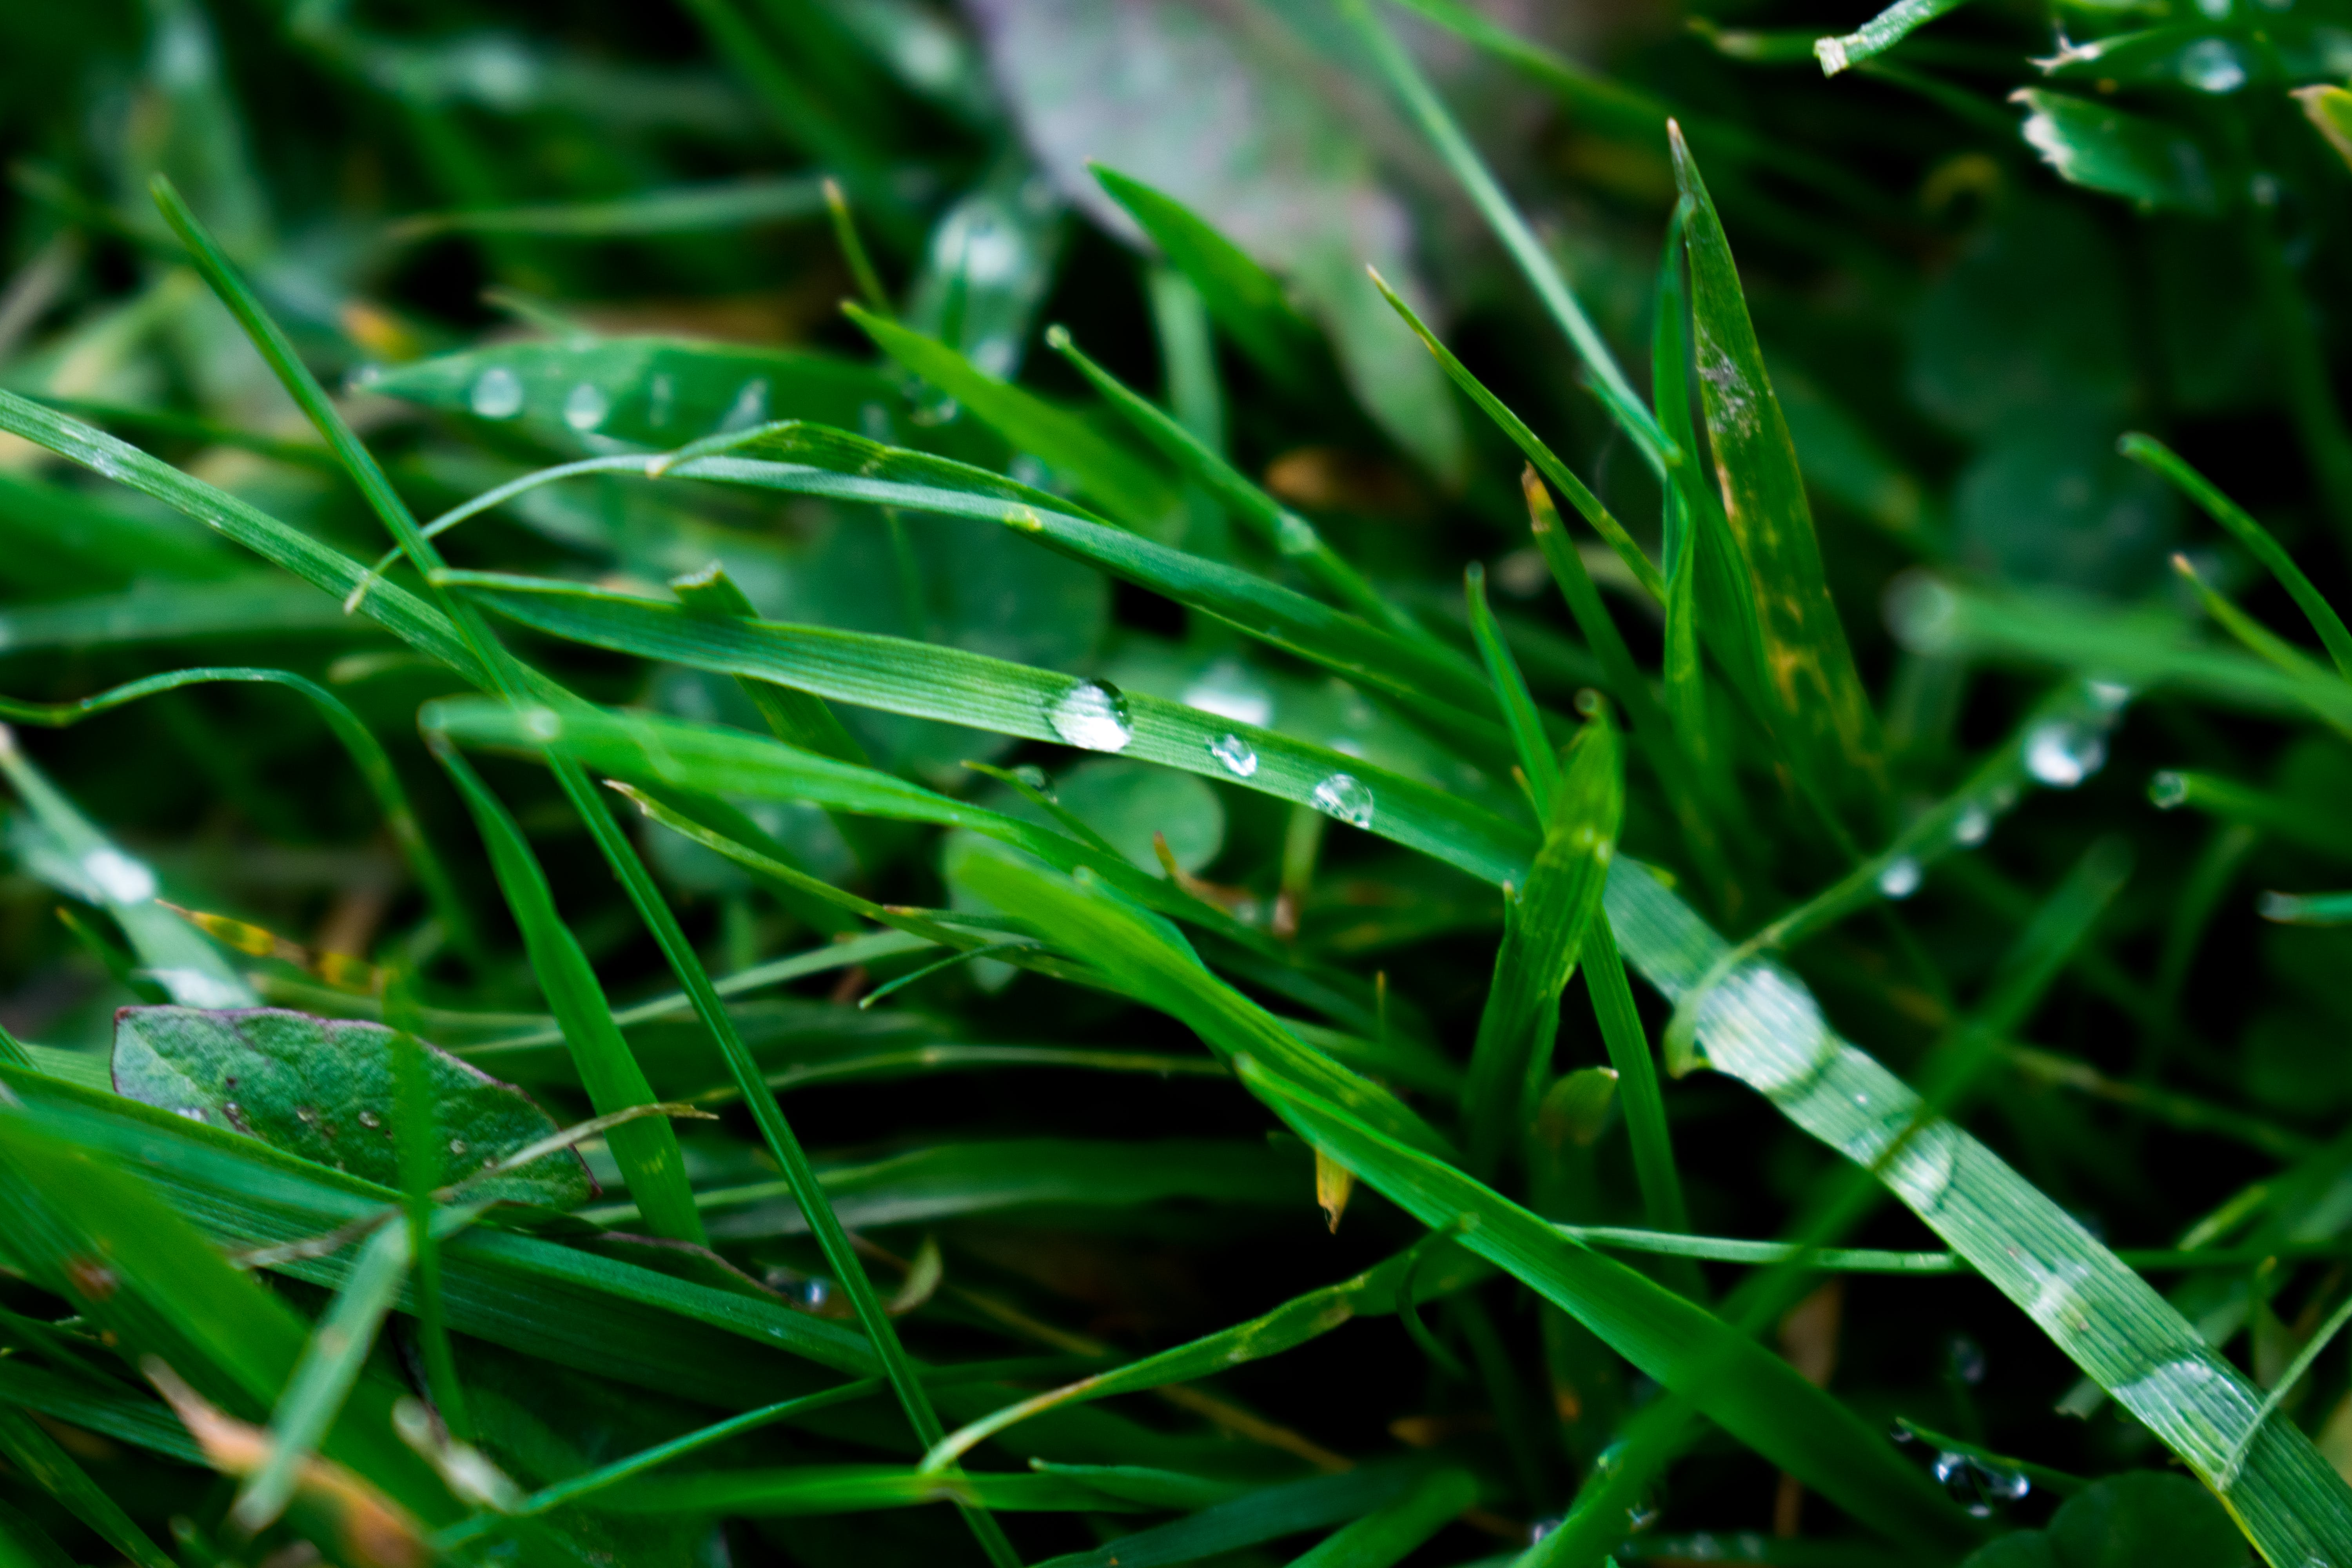 Macro Photography of Blade of Grass